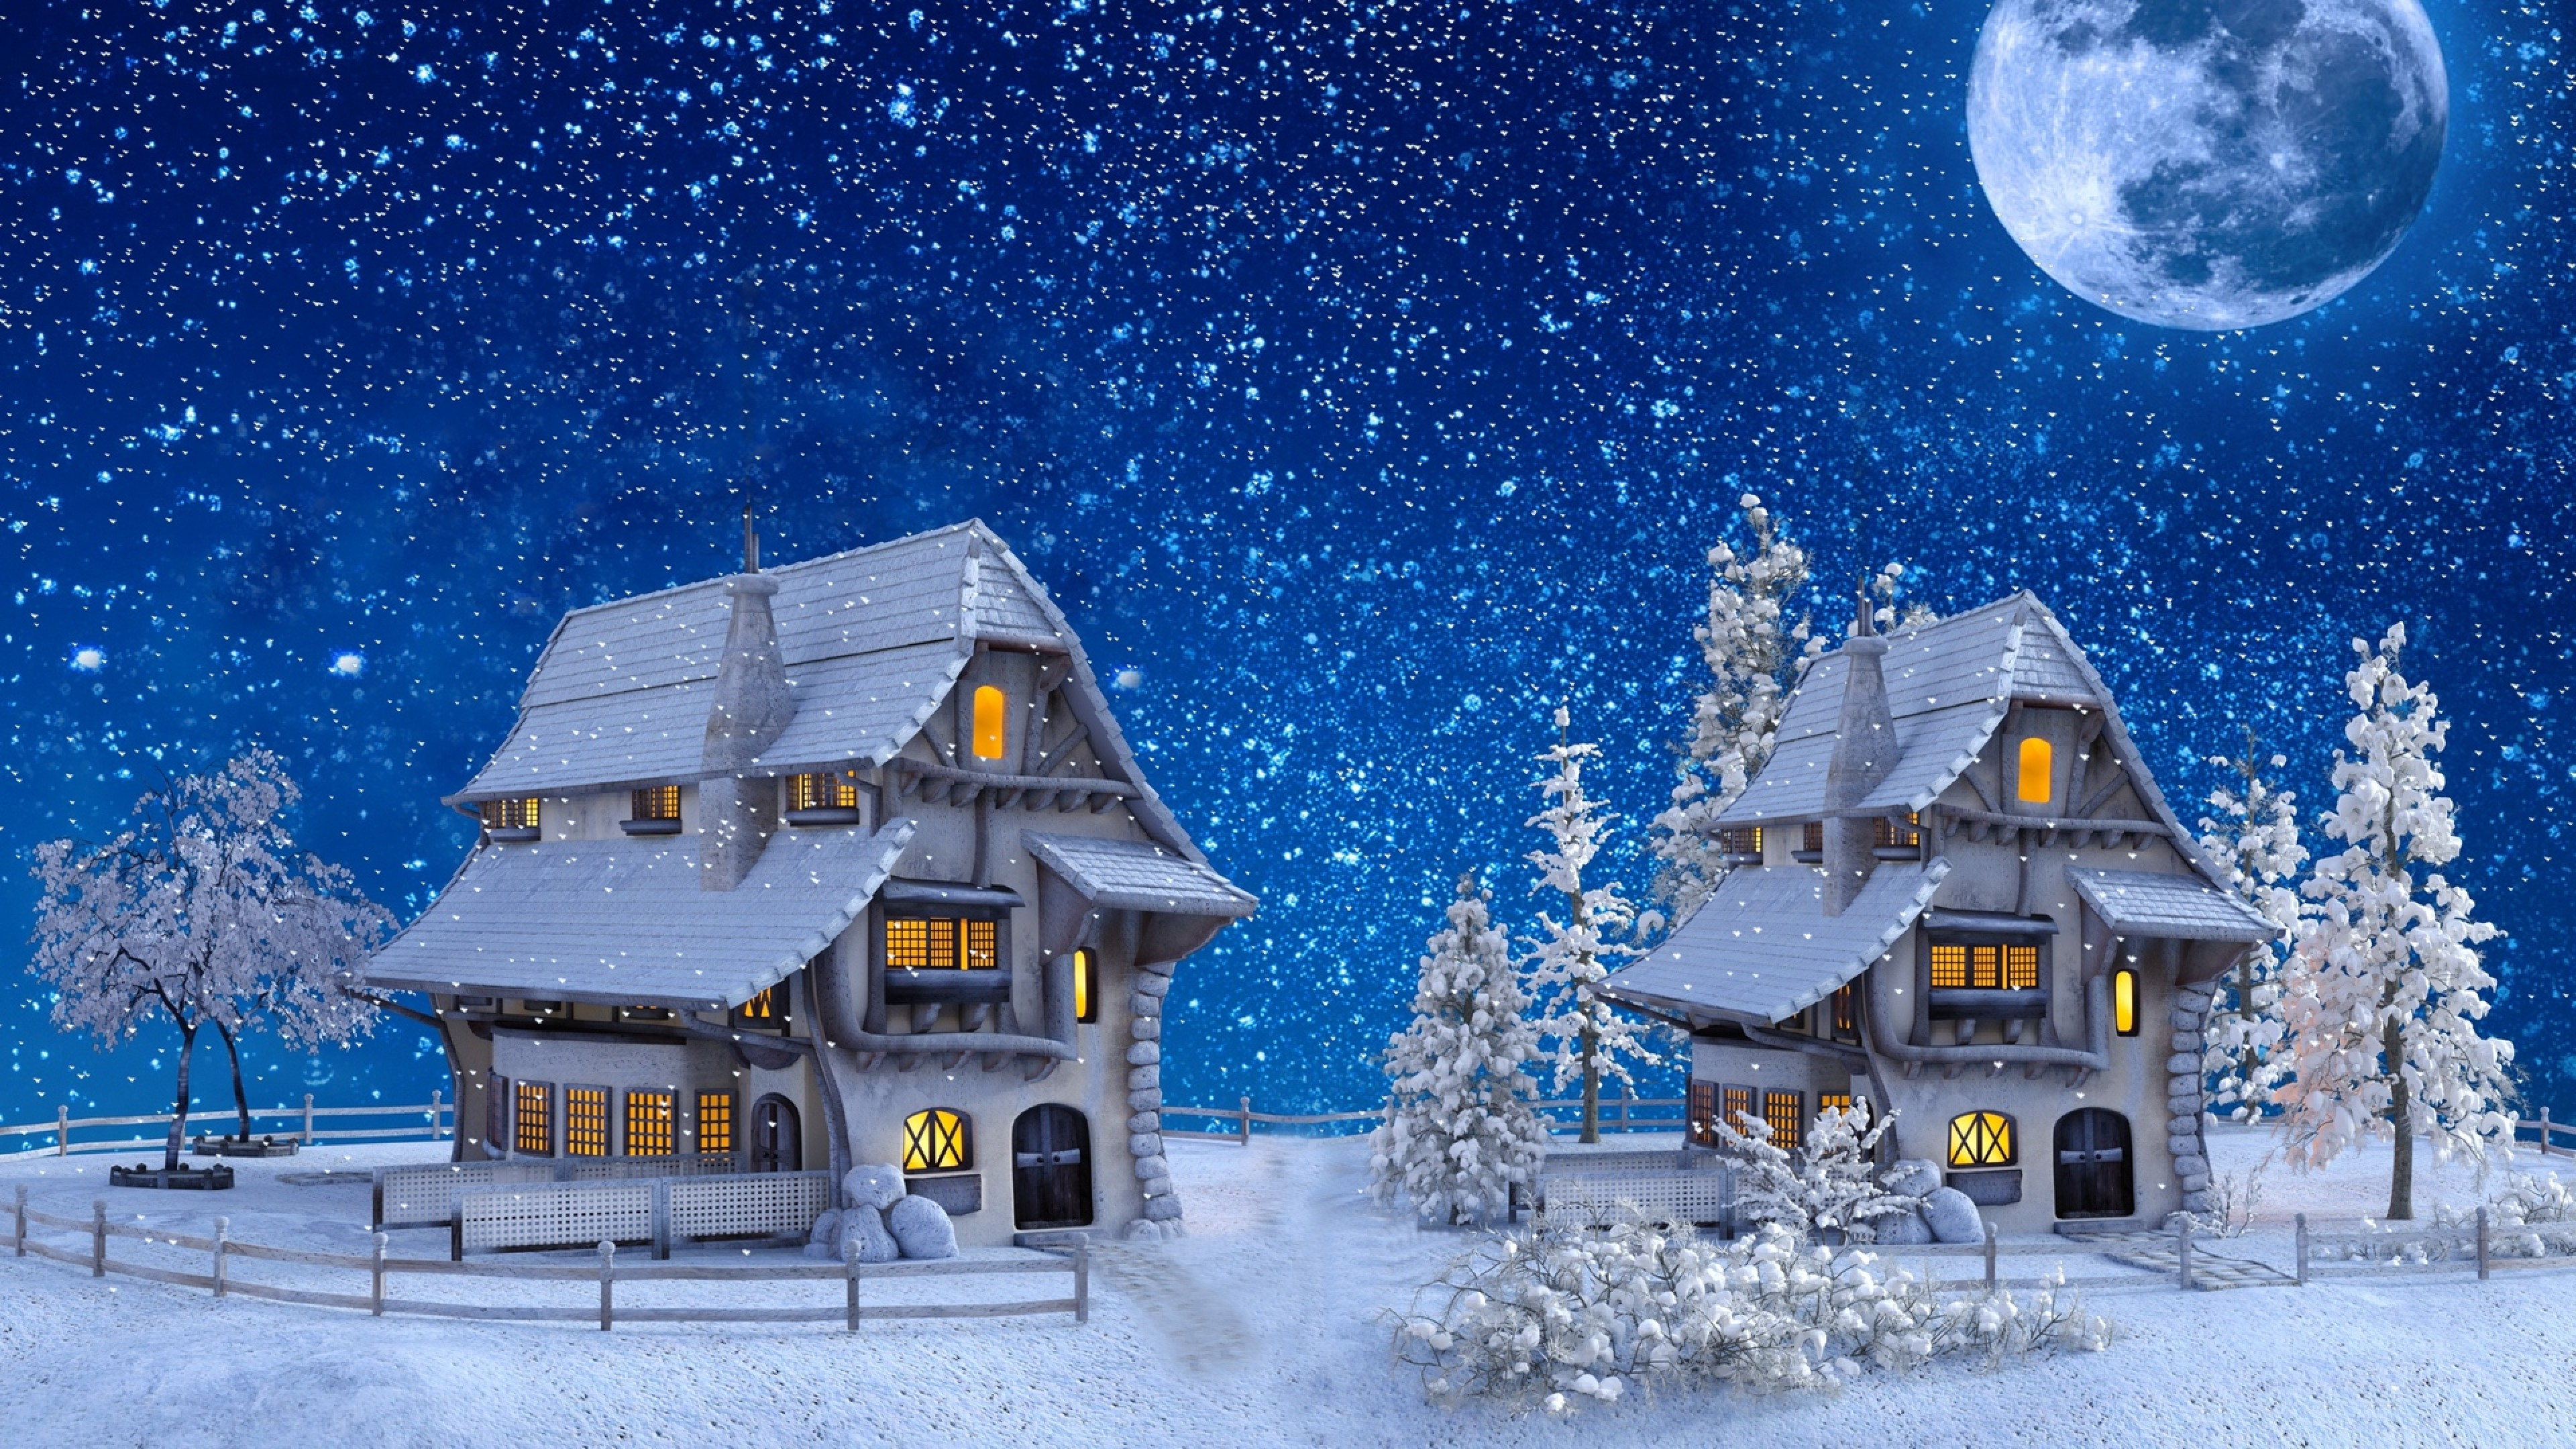 Houses Covered In Snow Painting Hd Wallpaper 4k Ultra Hd Hd Wallpaper Wallpapers Net